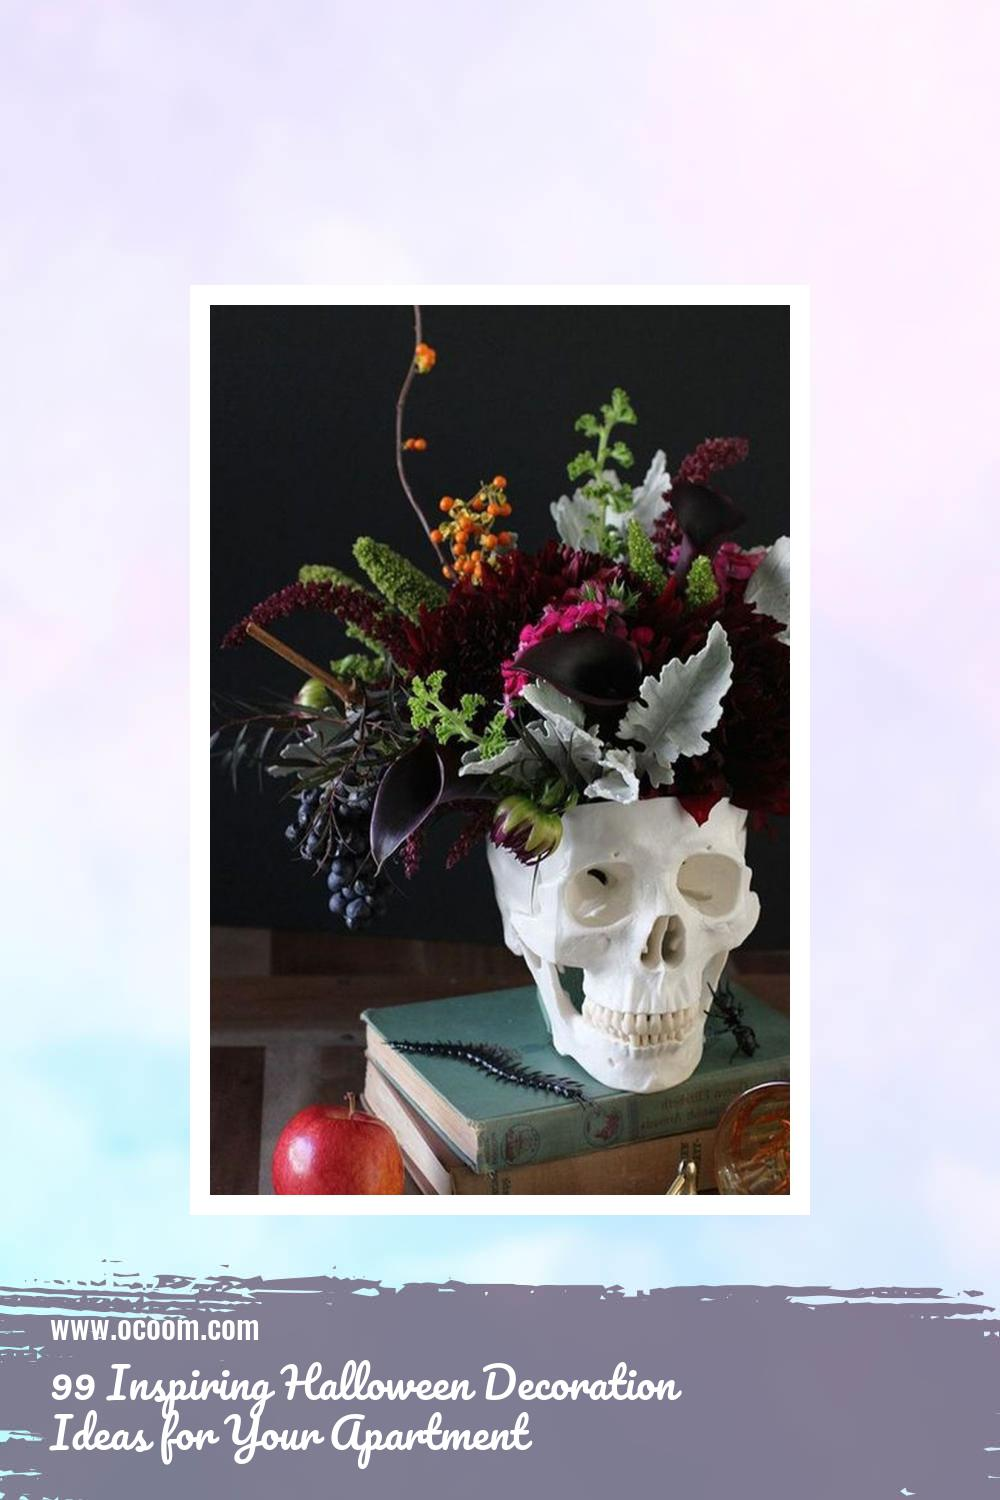 99 Inspiring Halloween Decoration Ideas for Your Apartment 56